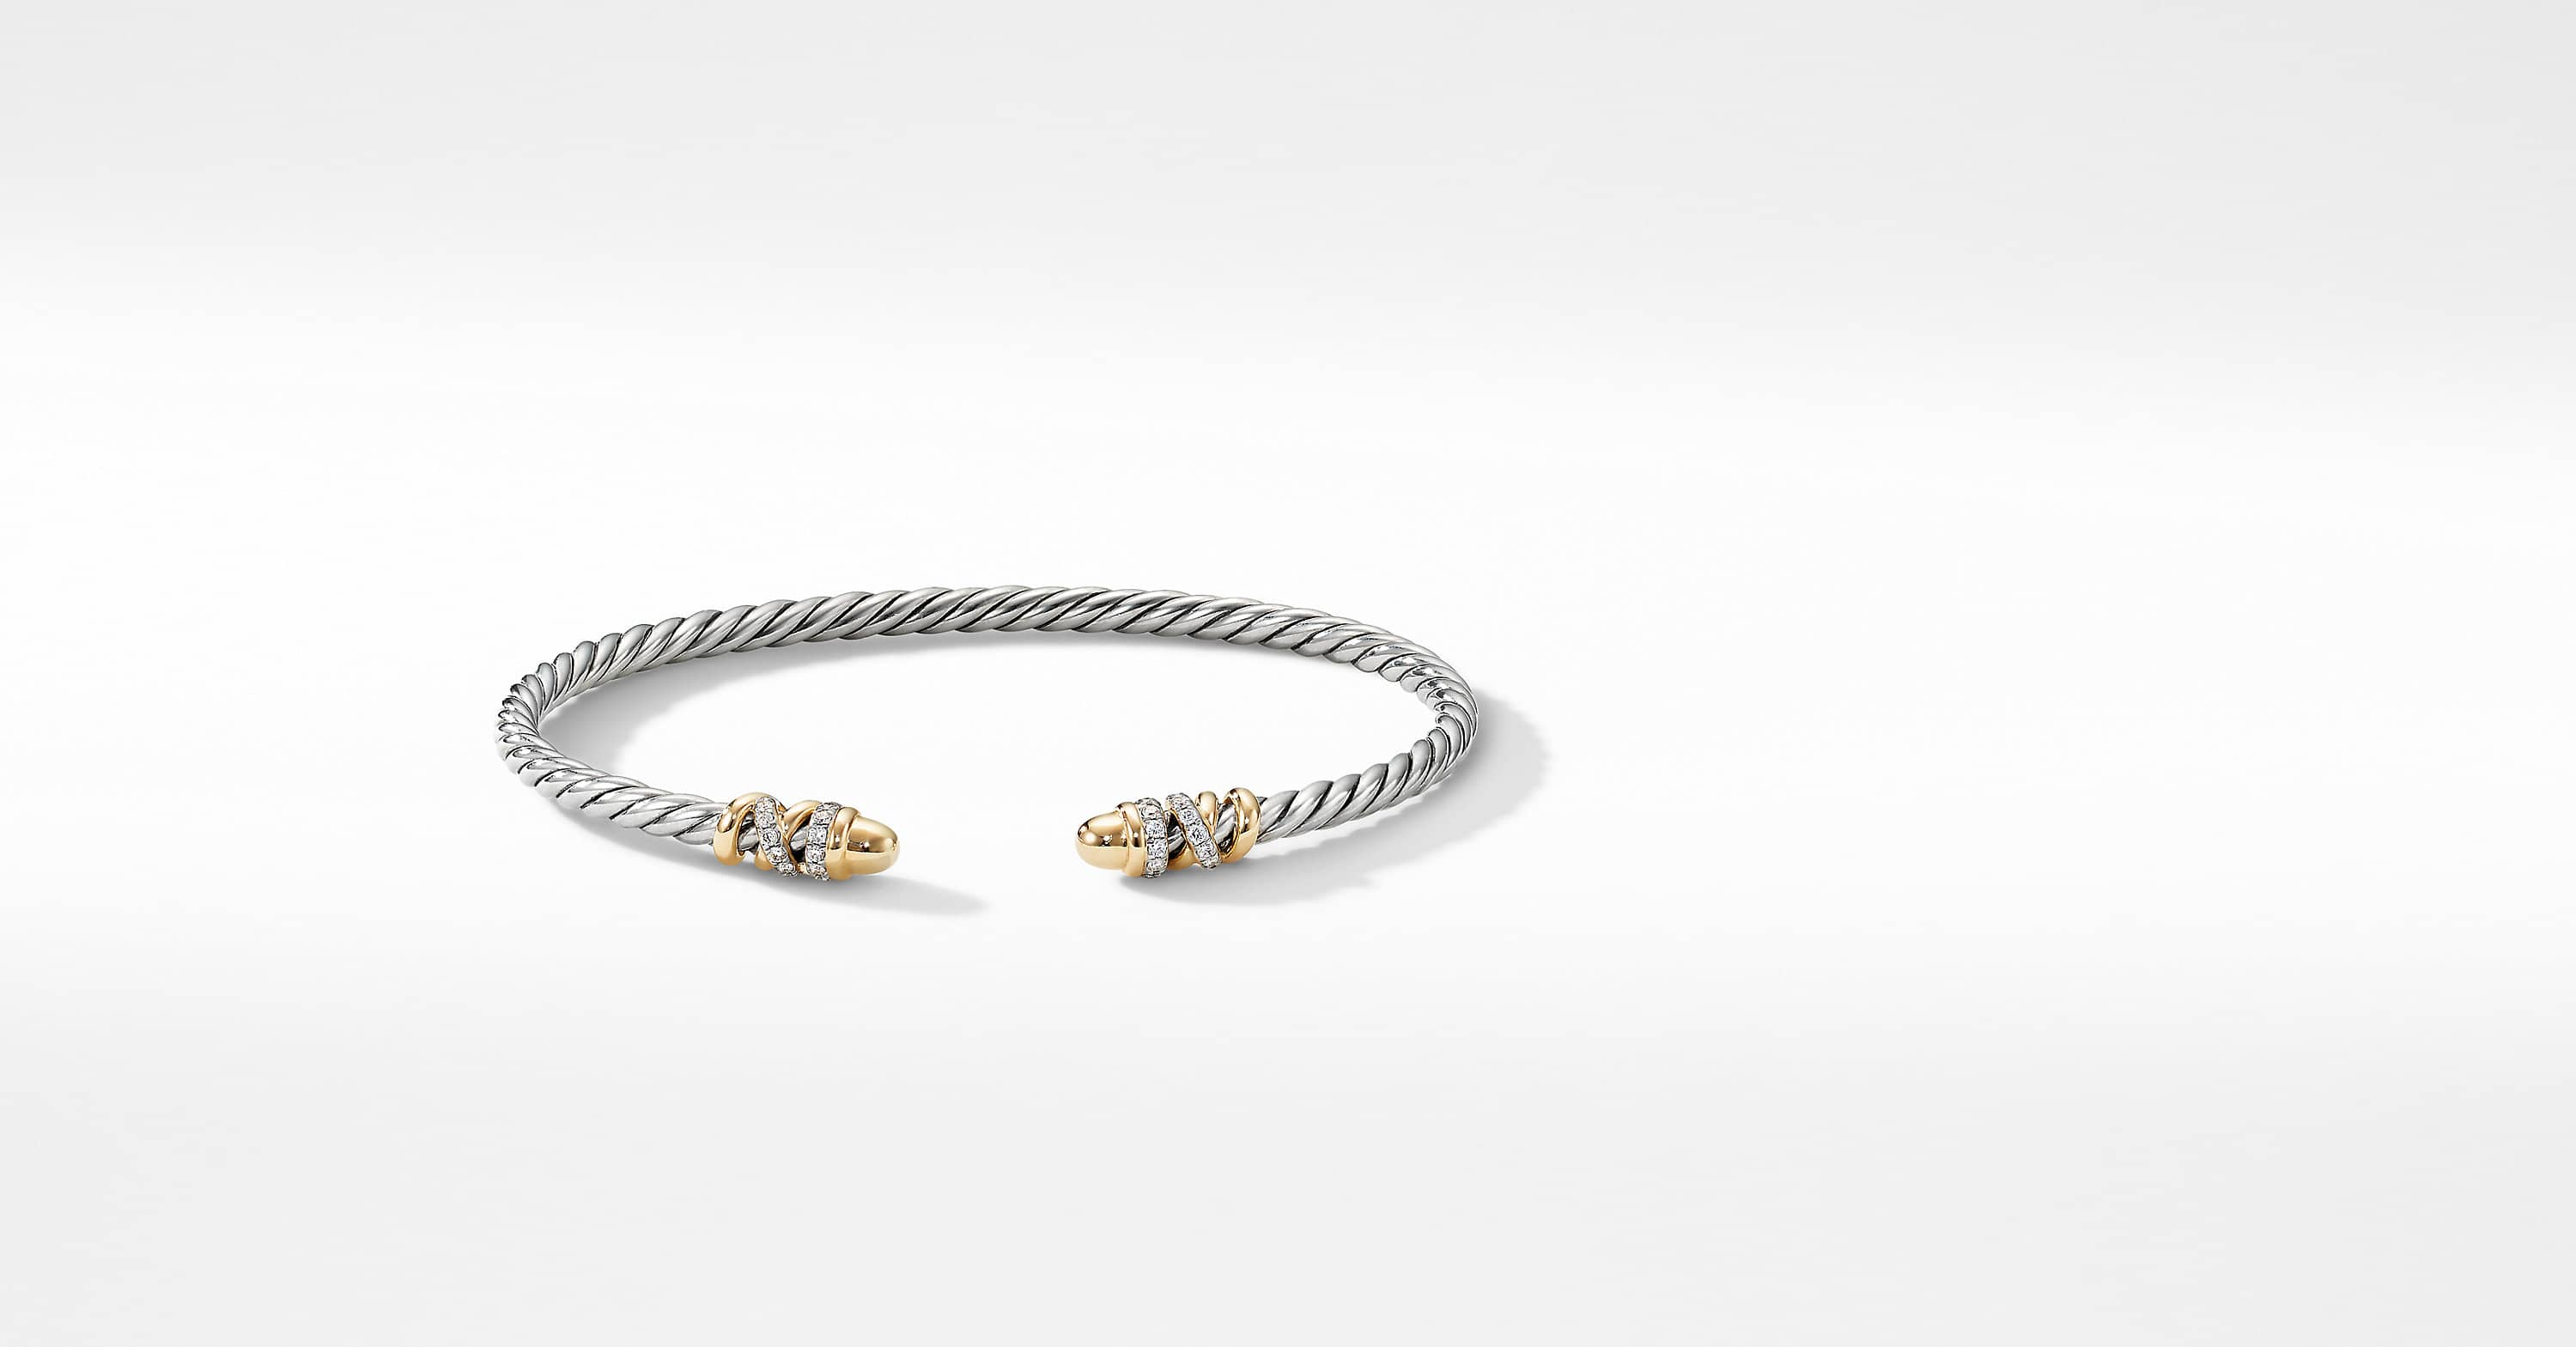 Petite Helena Open Bracelet with 18K Yellow Gold with Diamonds